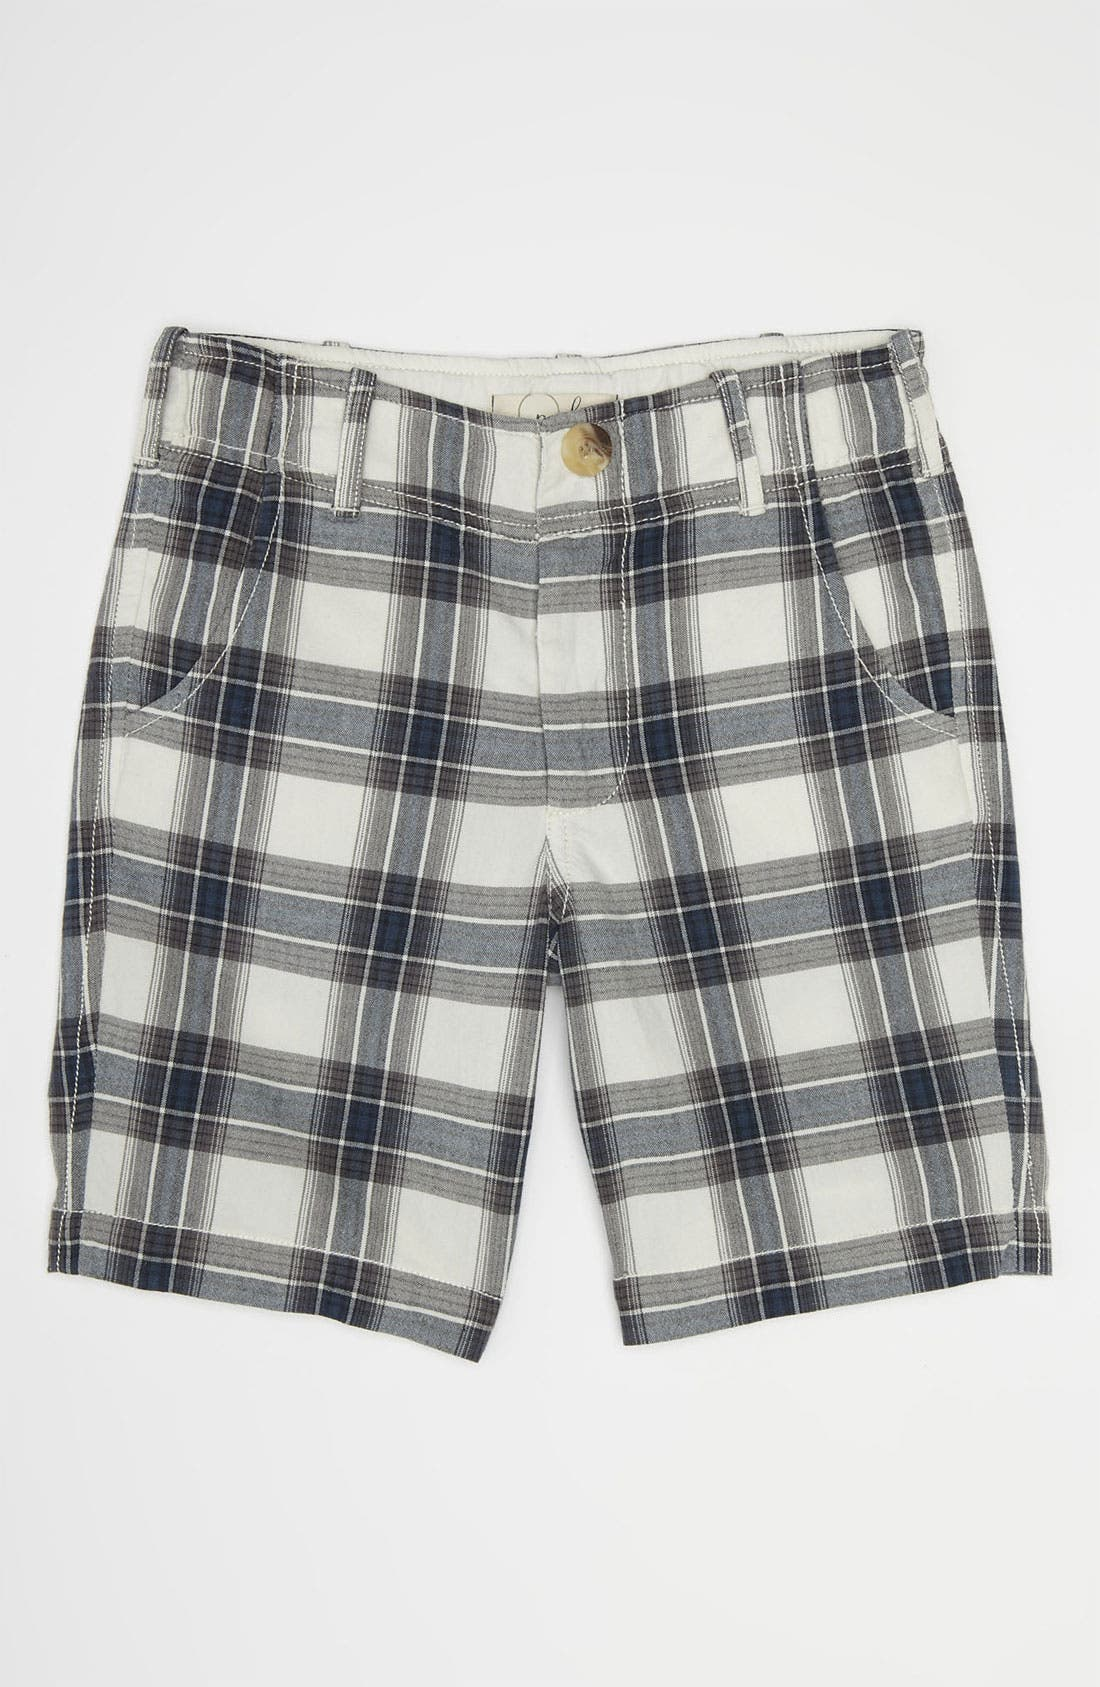 Alternate Image 1 Selected - Peek 'Montauk Hampton' Shorts (Toddler, Little Boys & Big Boys)